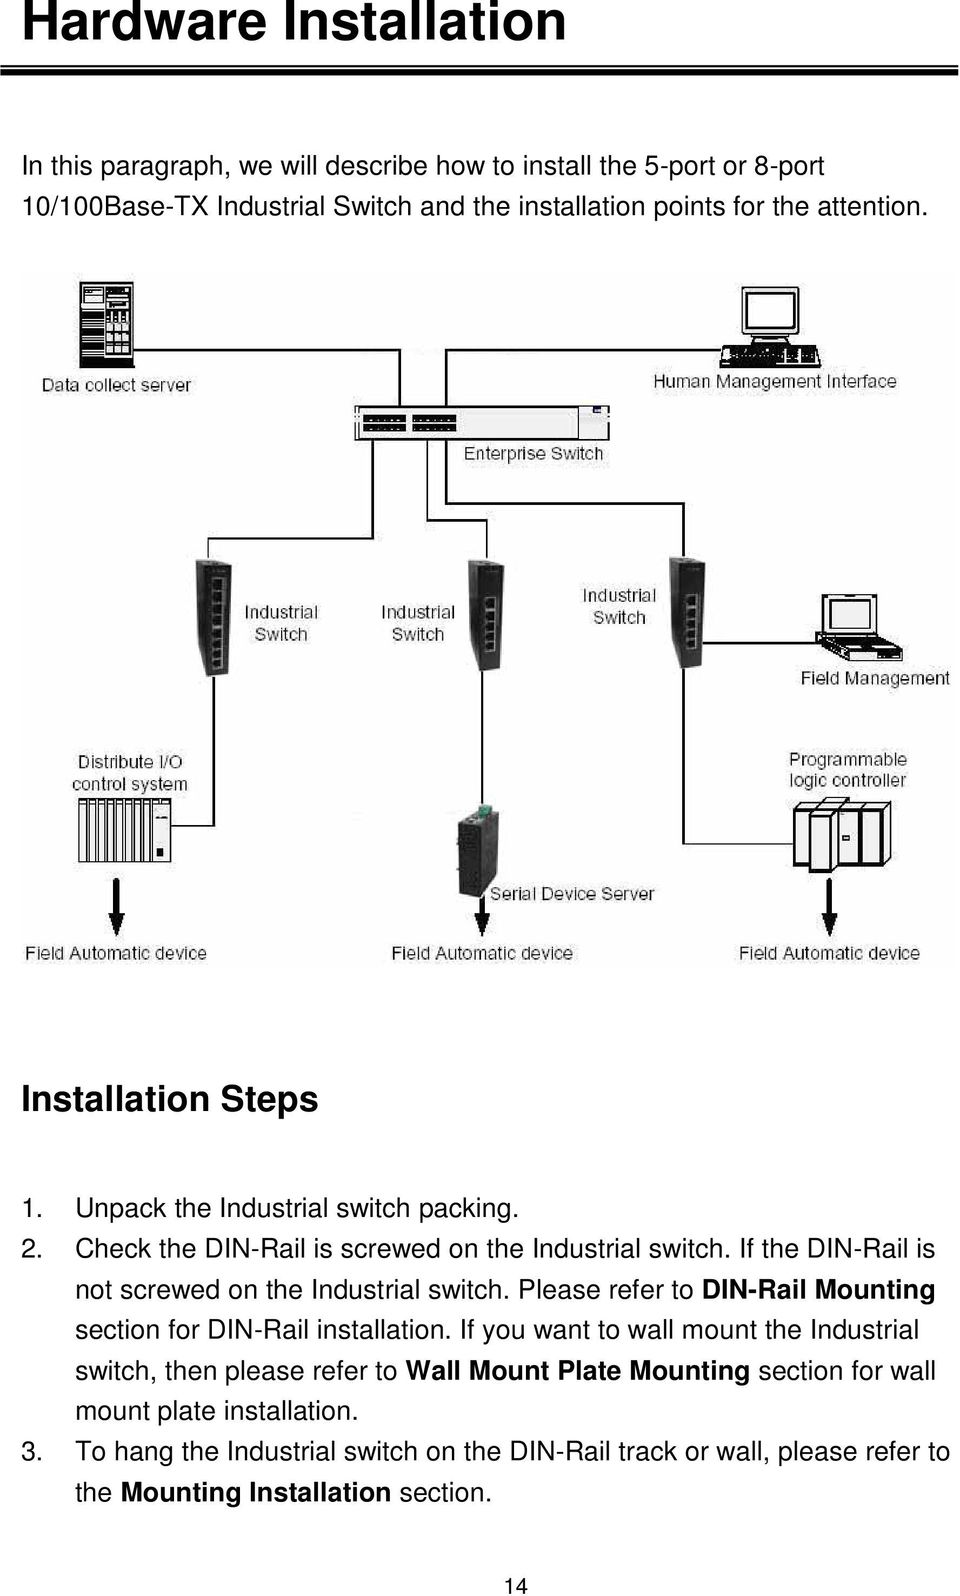 If the DIN-Rail is not screwed on the Industrial switch. Please refer to DIN-Rail Mounting section for DIN-Rail installation.